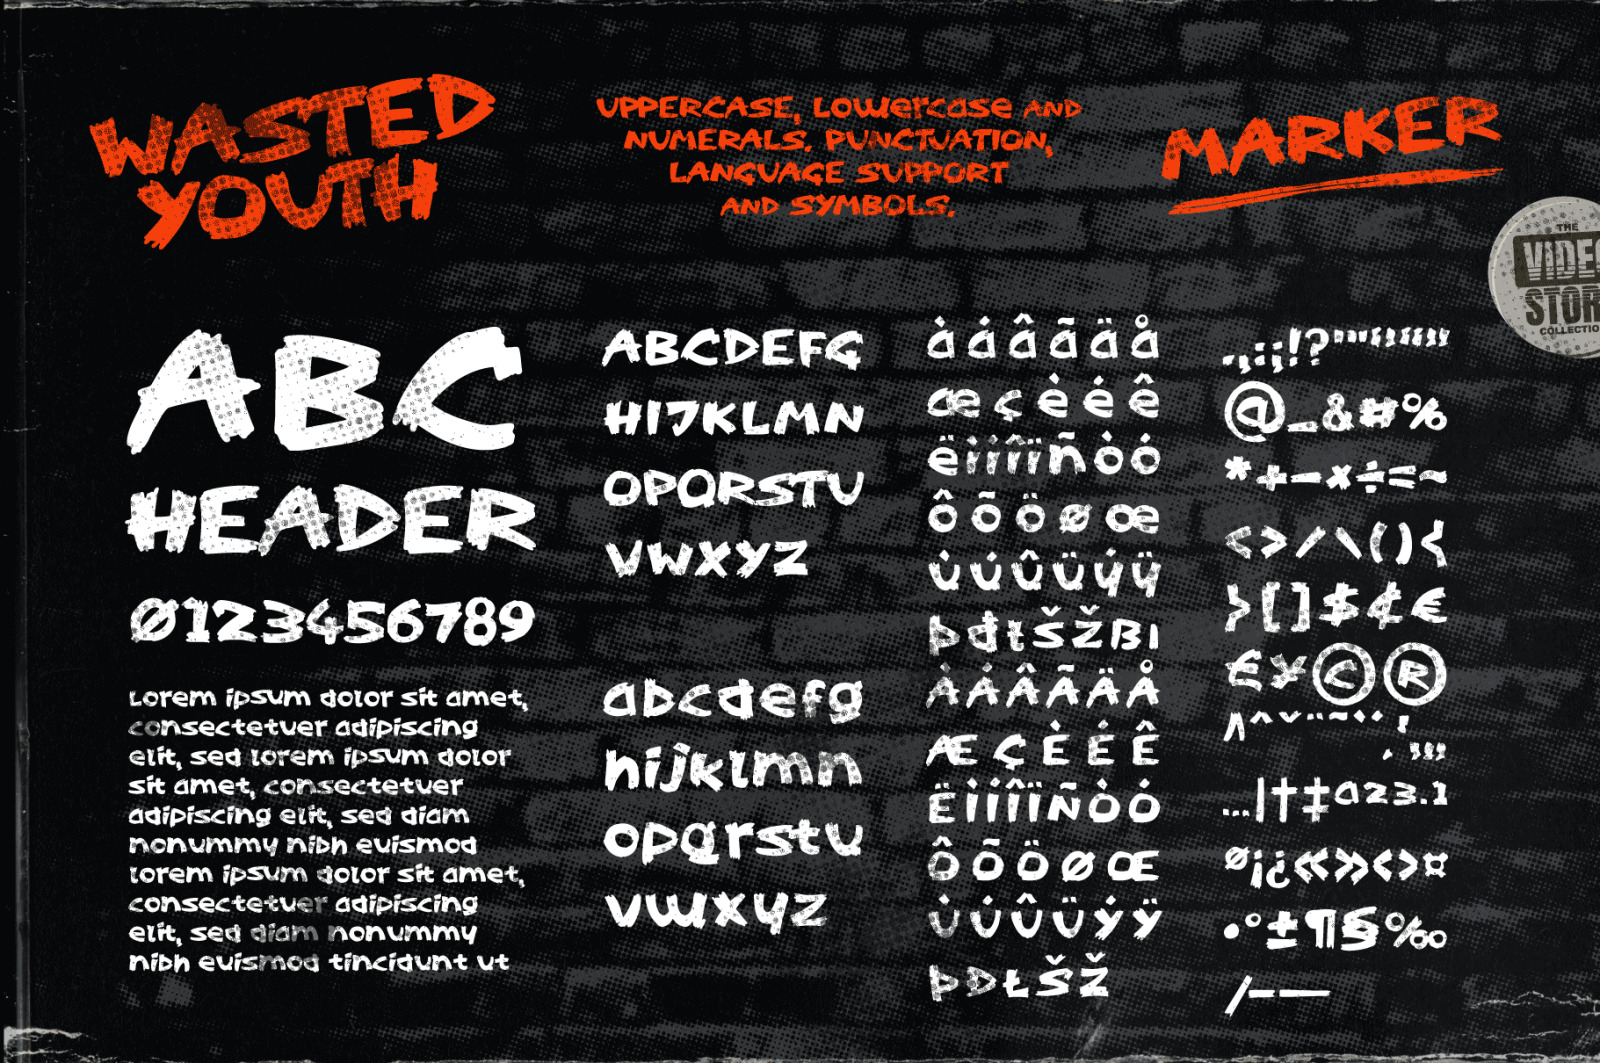 Wasted Youth: A 90s Grunge Inspired Brush Font